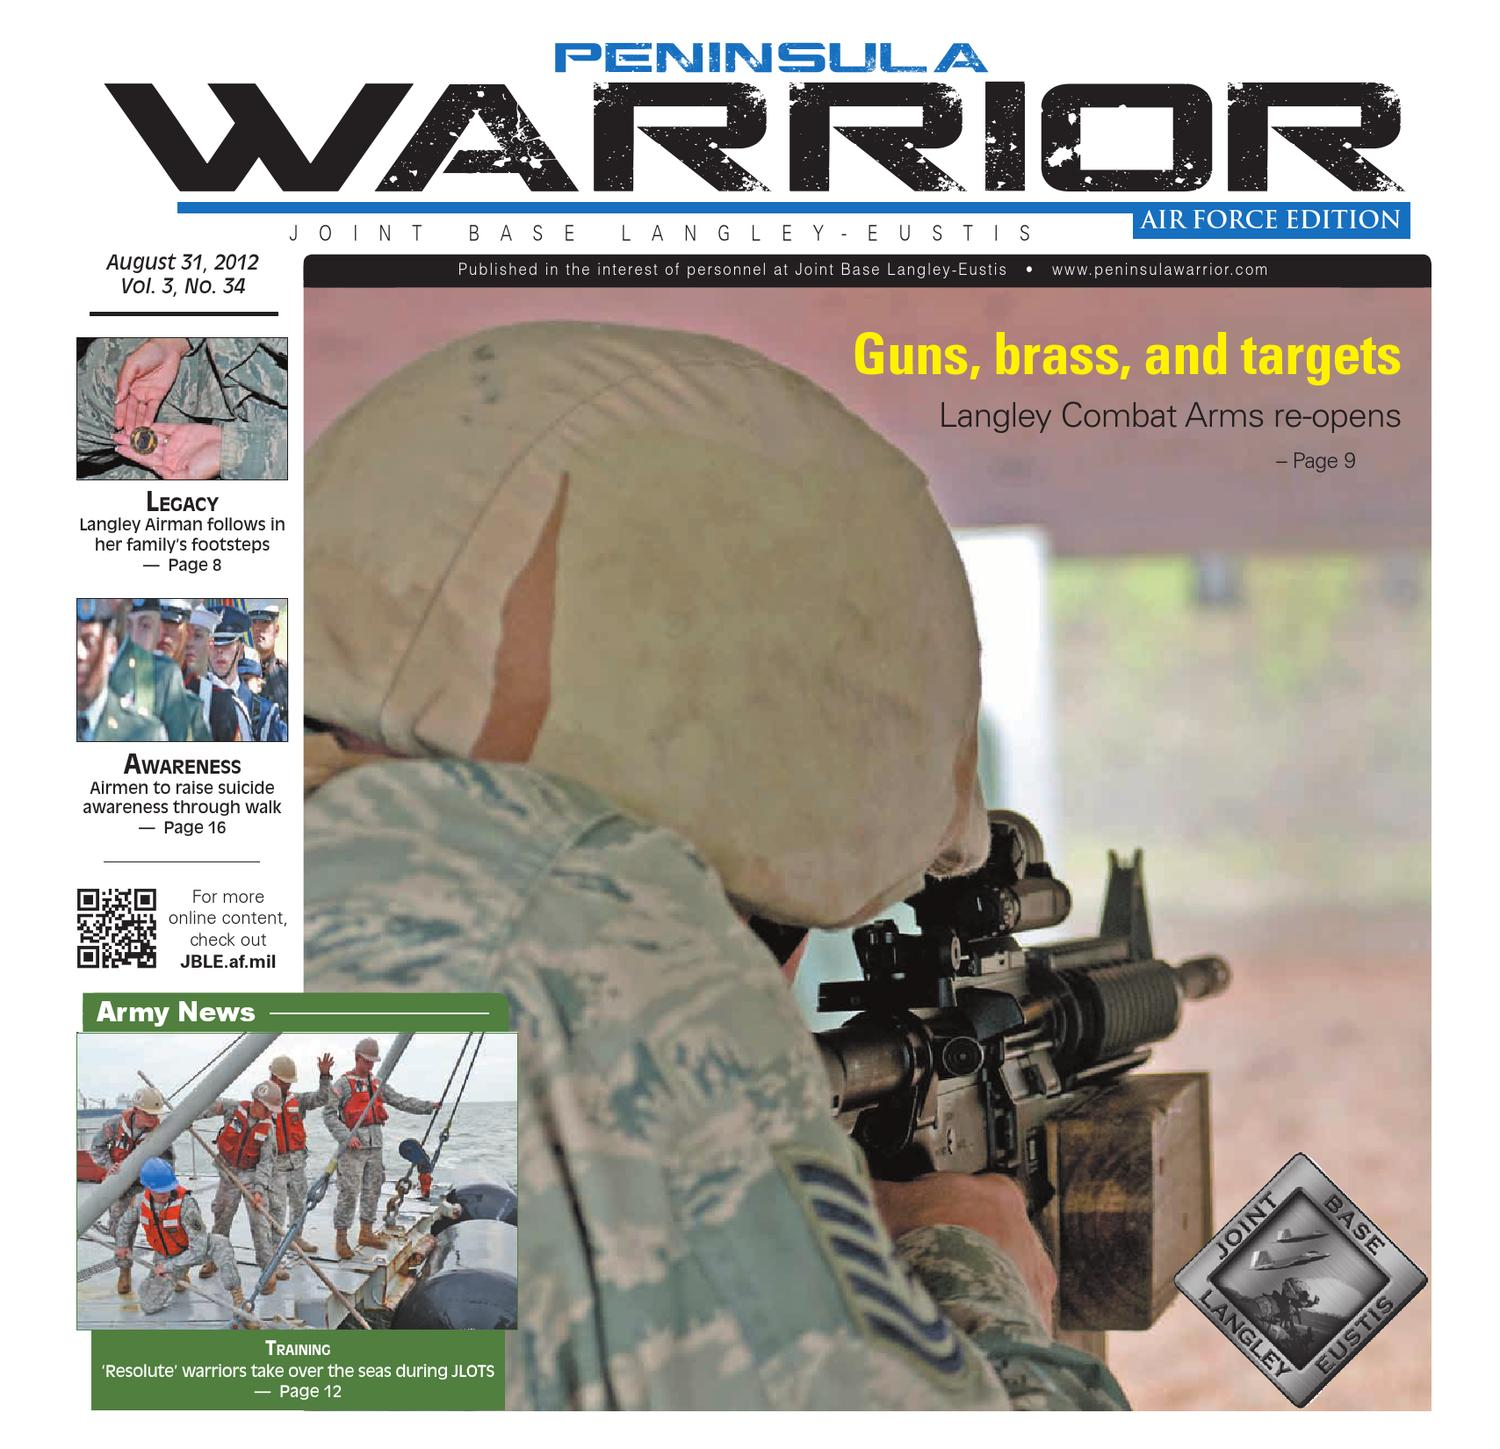 Peninsula Warrior Aug  31, 2012 Air Force Edition by